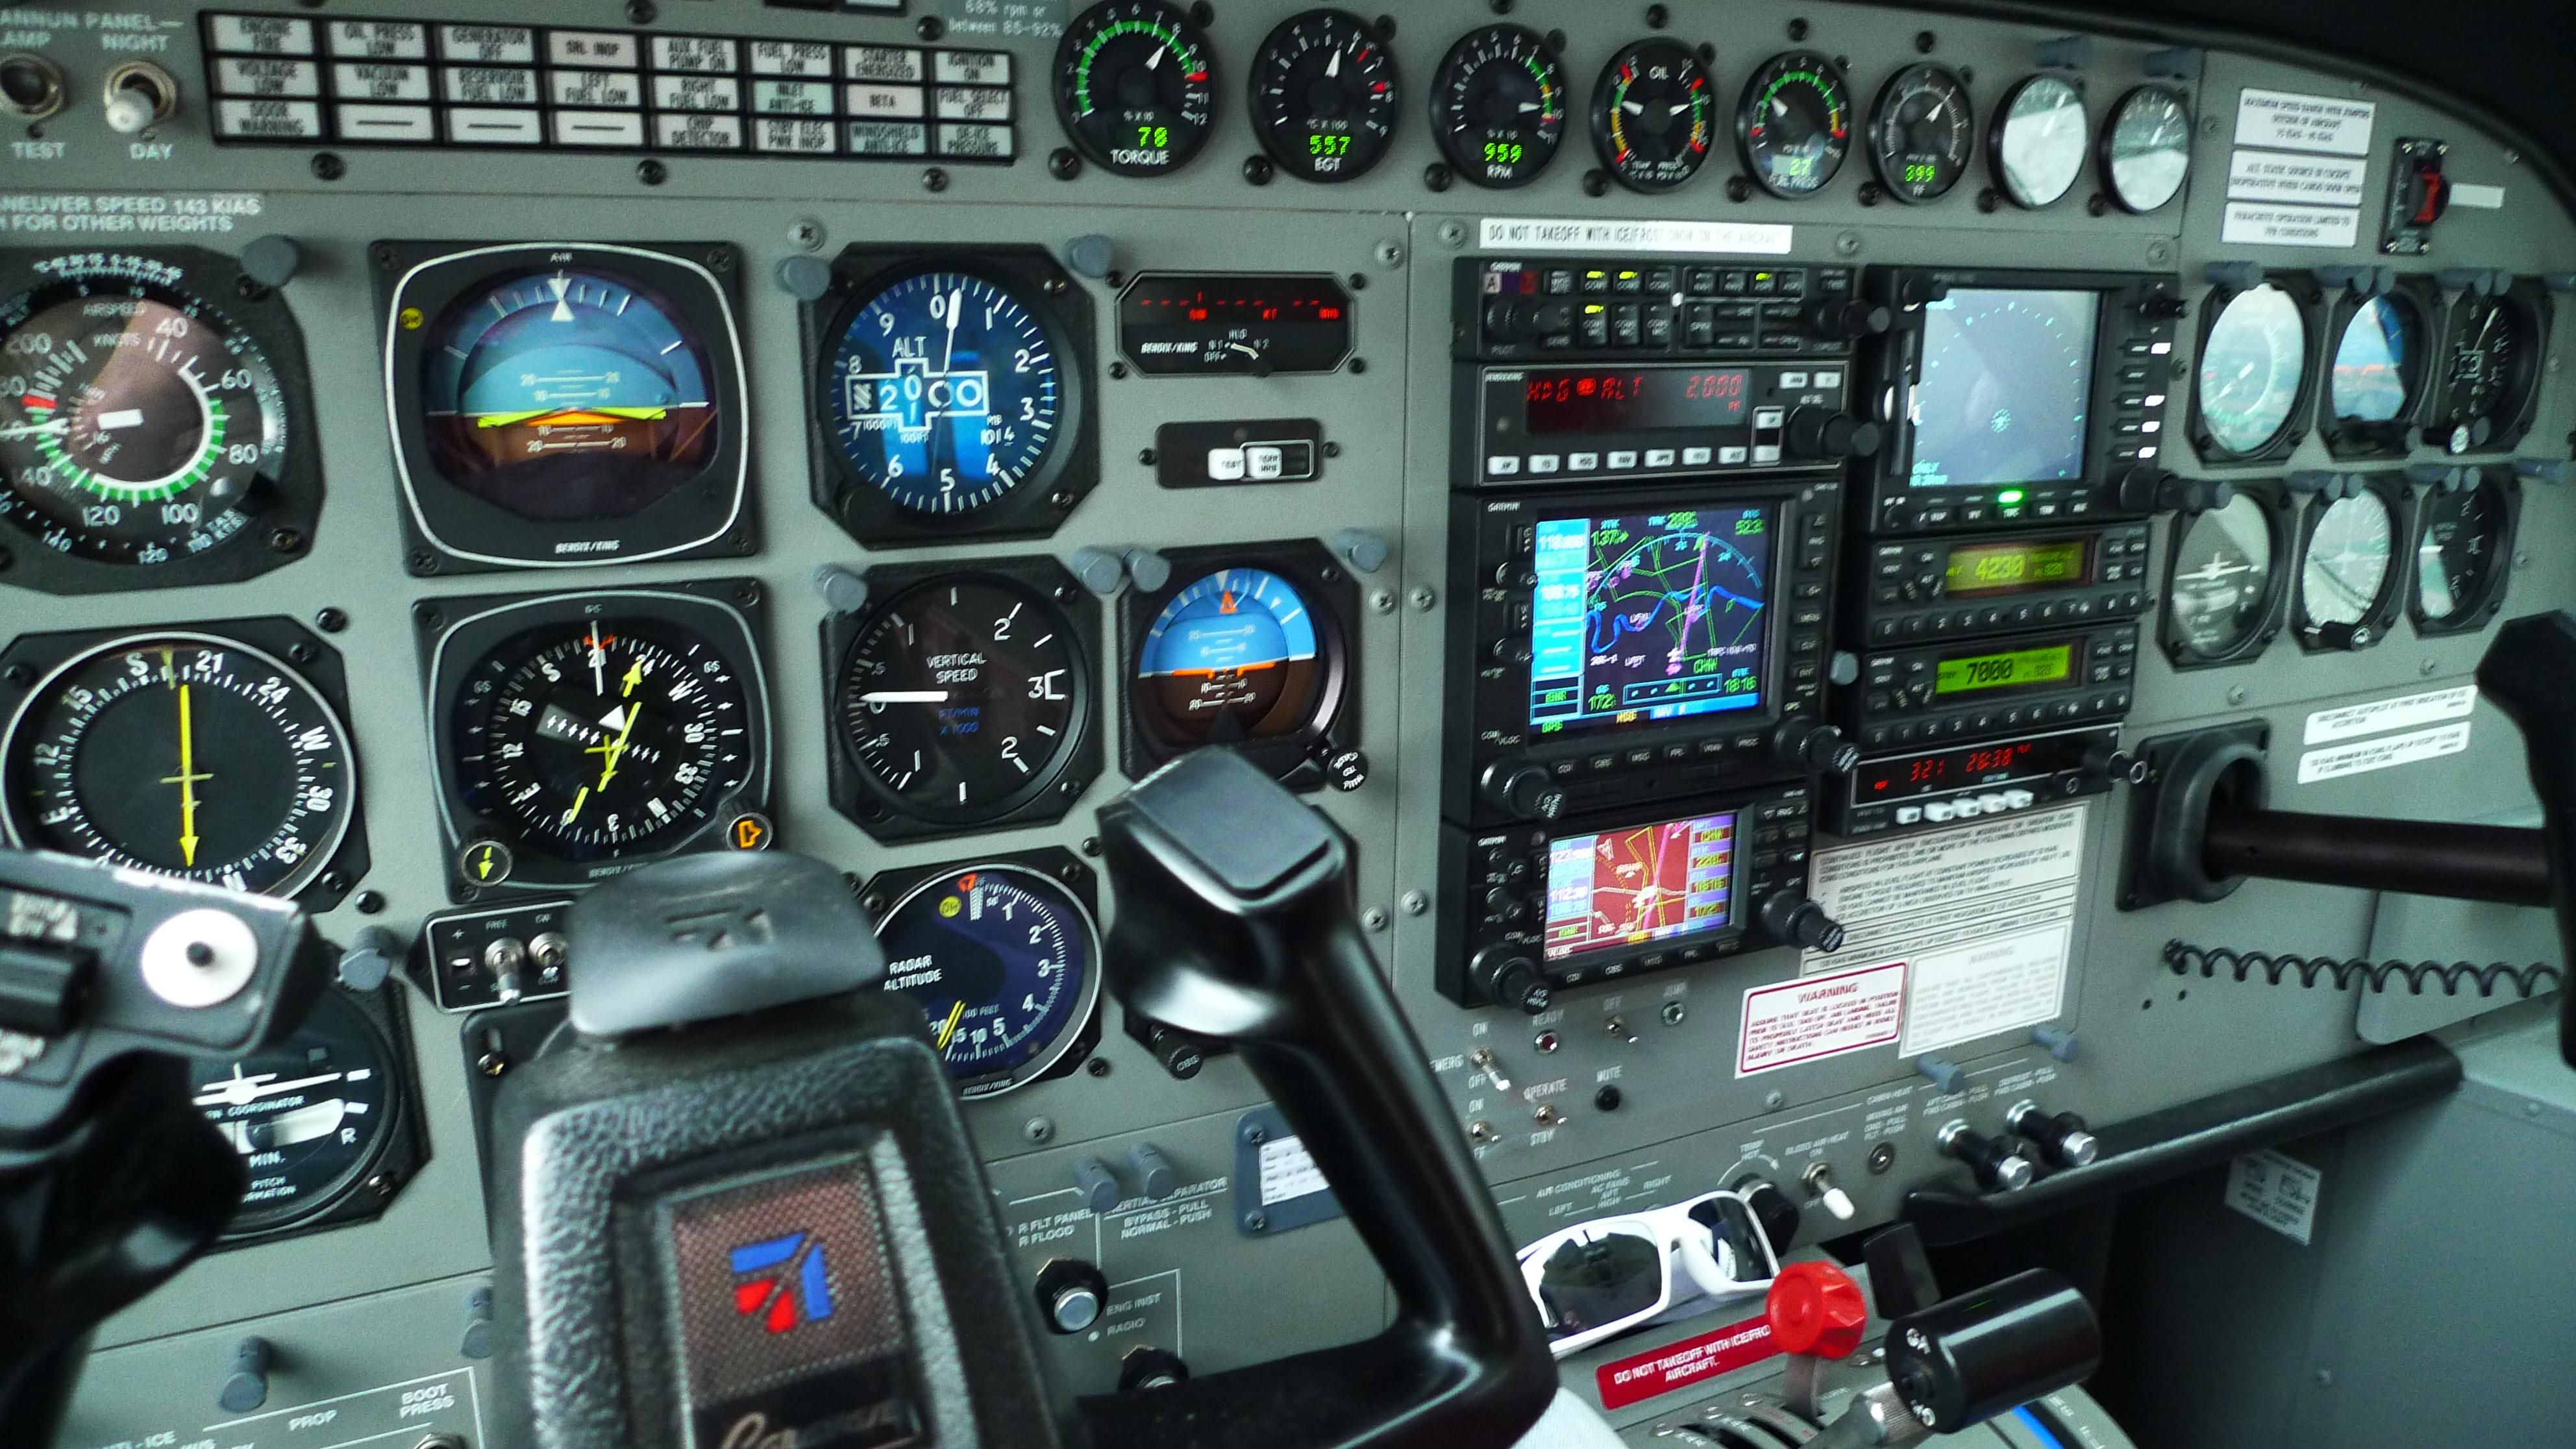 Cessna Caravan Cockpit Wet Lease Garrett Equipped EASA - Airline captain takes amazing photos from his cockpit and no theyre not photoshopped